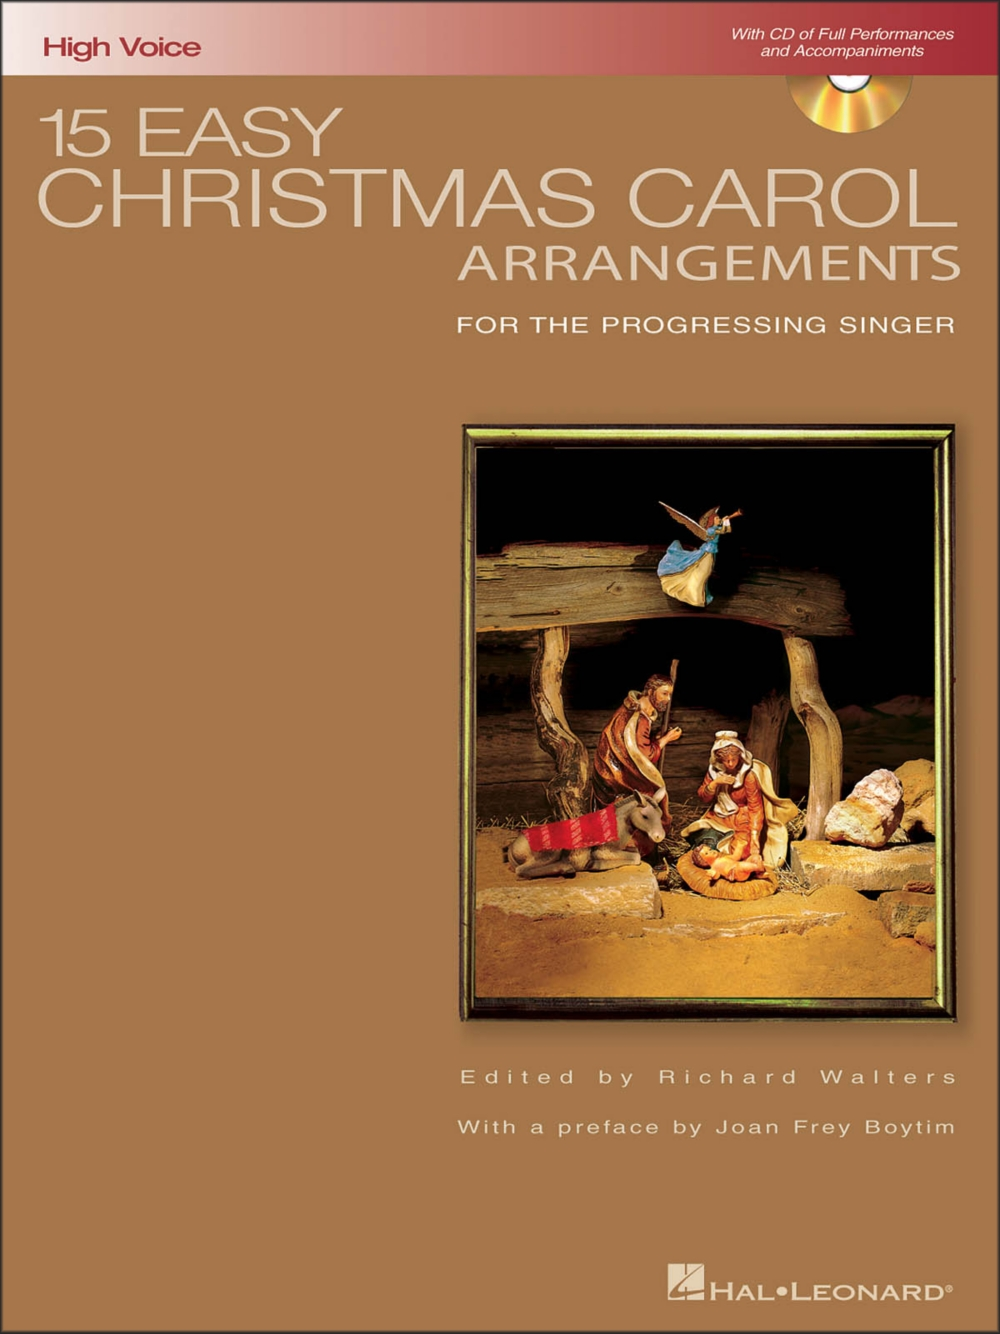 Hal Leonard 15 Easy Christmas Carol Arrangements for High Voice Book CD by